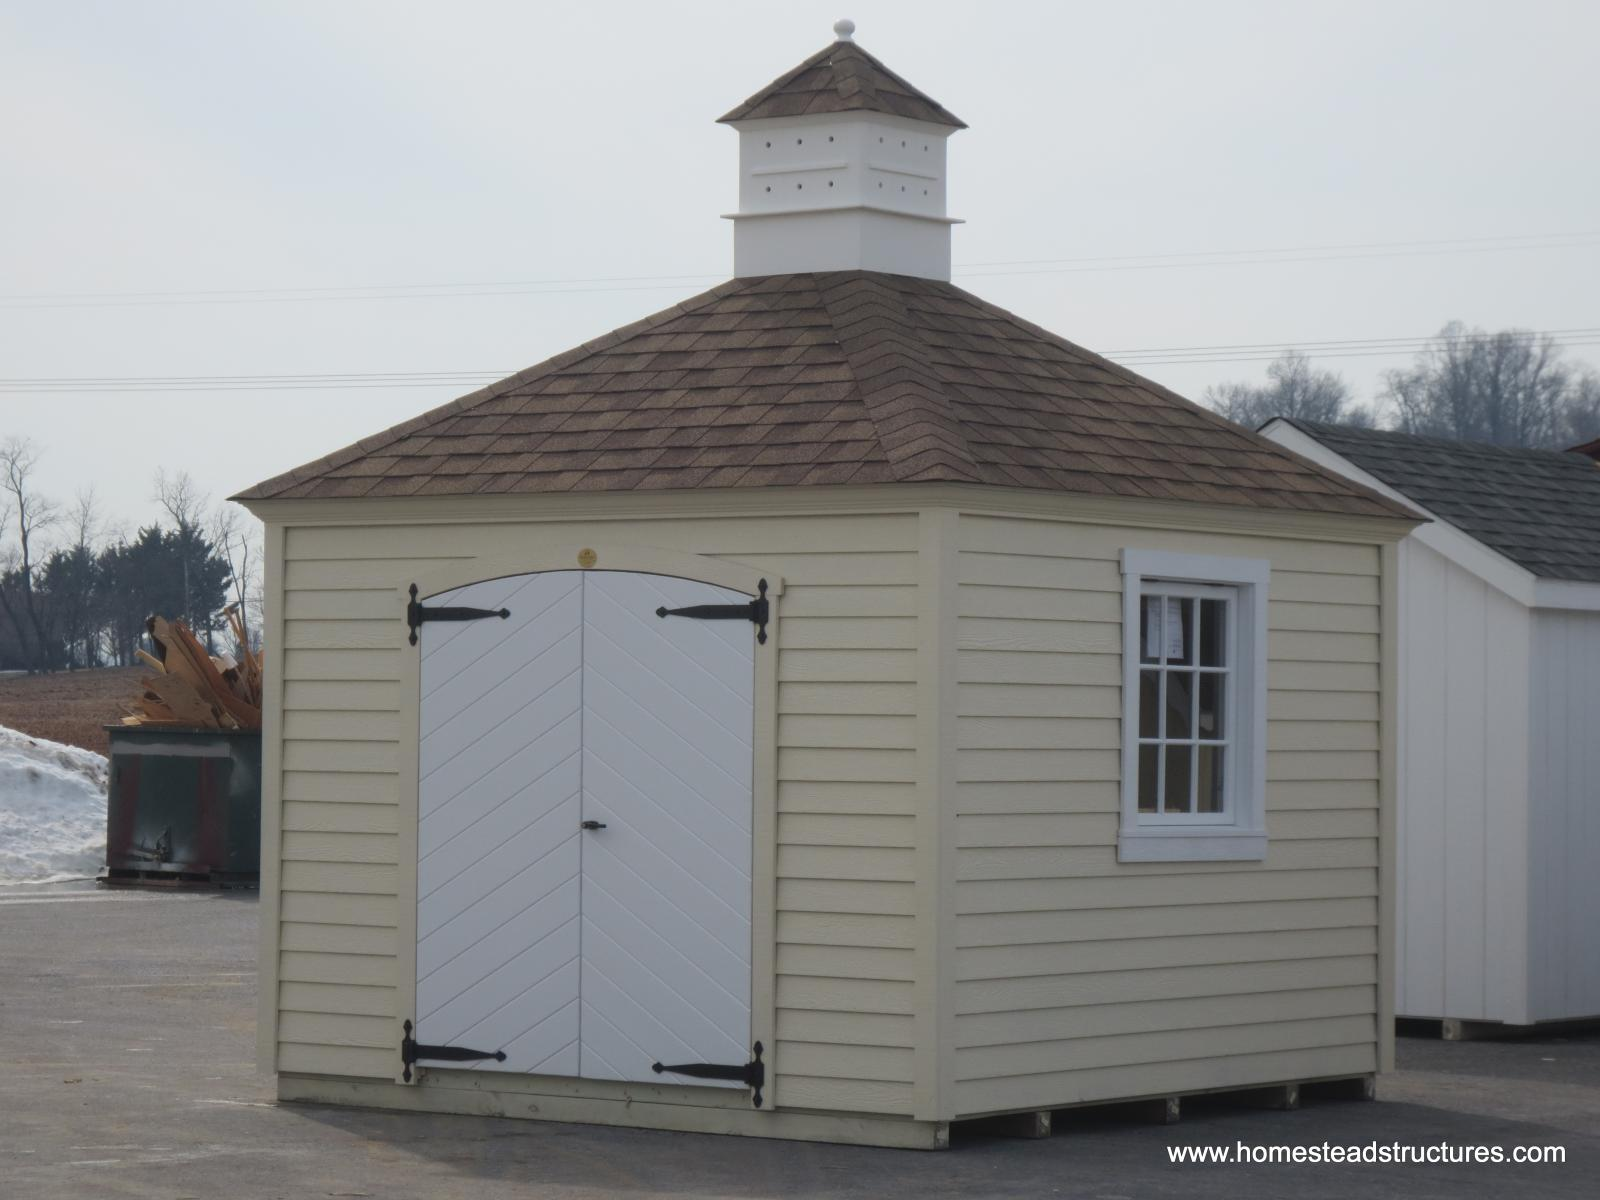 10 x 10 laurel garden shed with hip roof wood lap